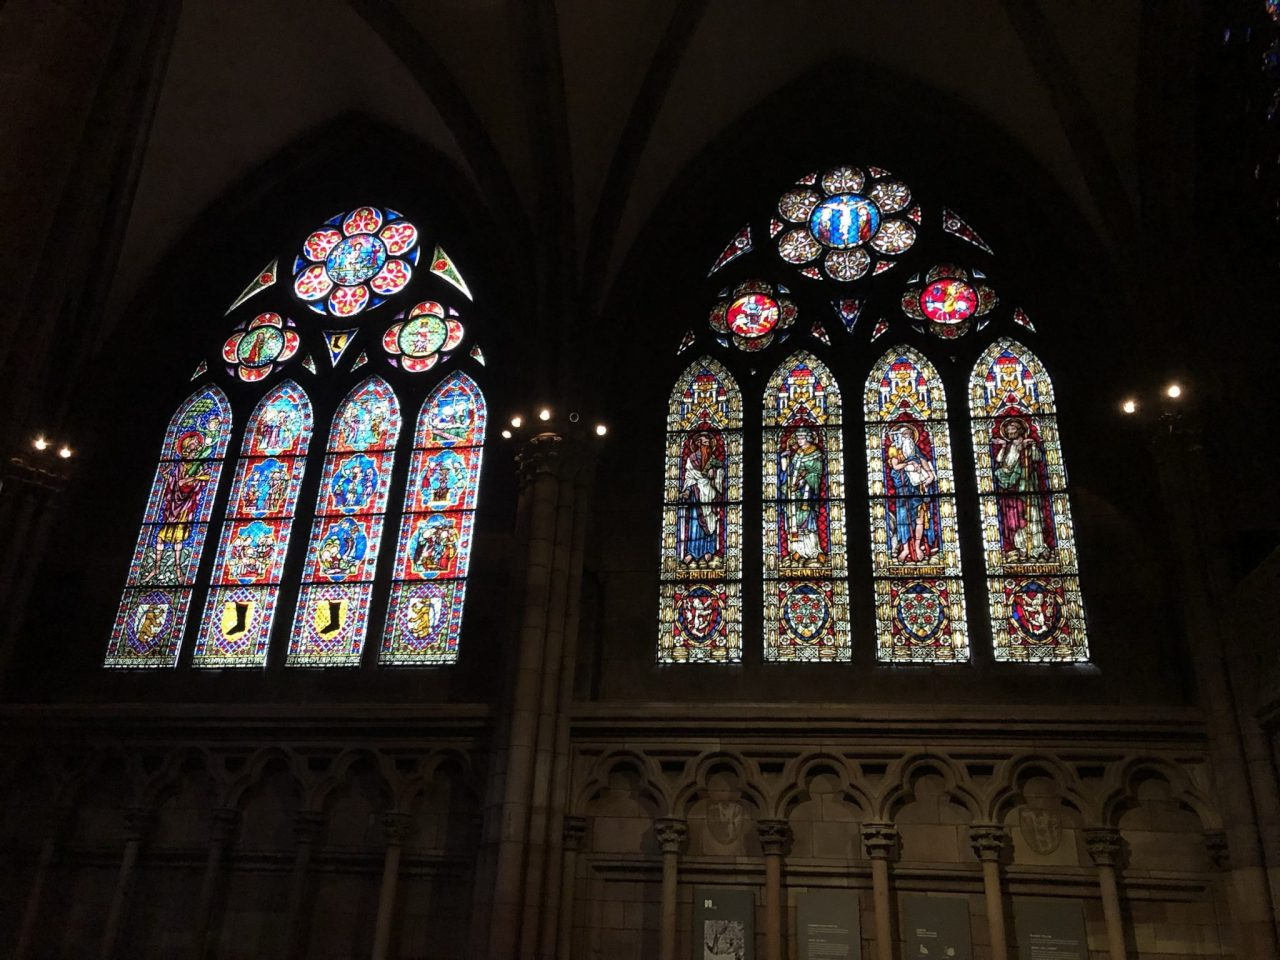 Windows of Freiburg Cathedral, Muenster